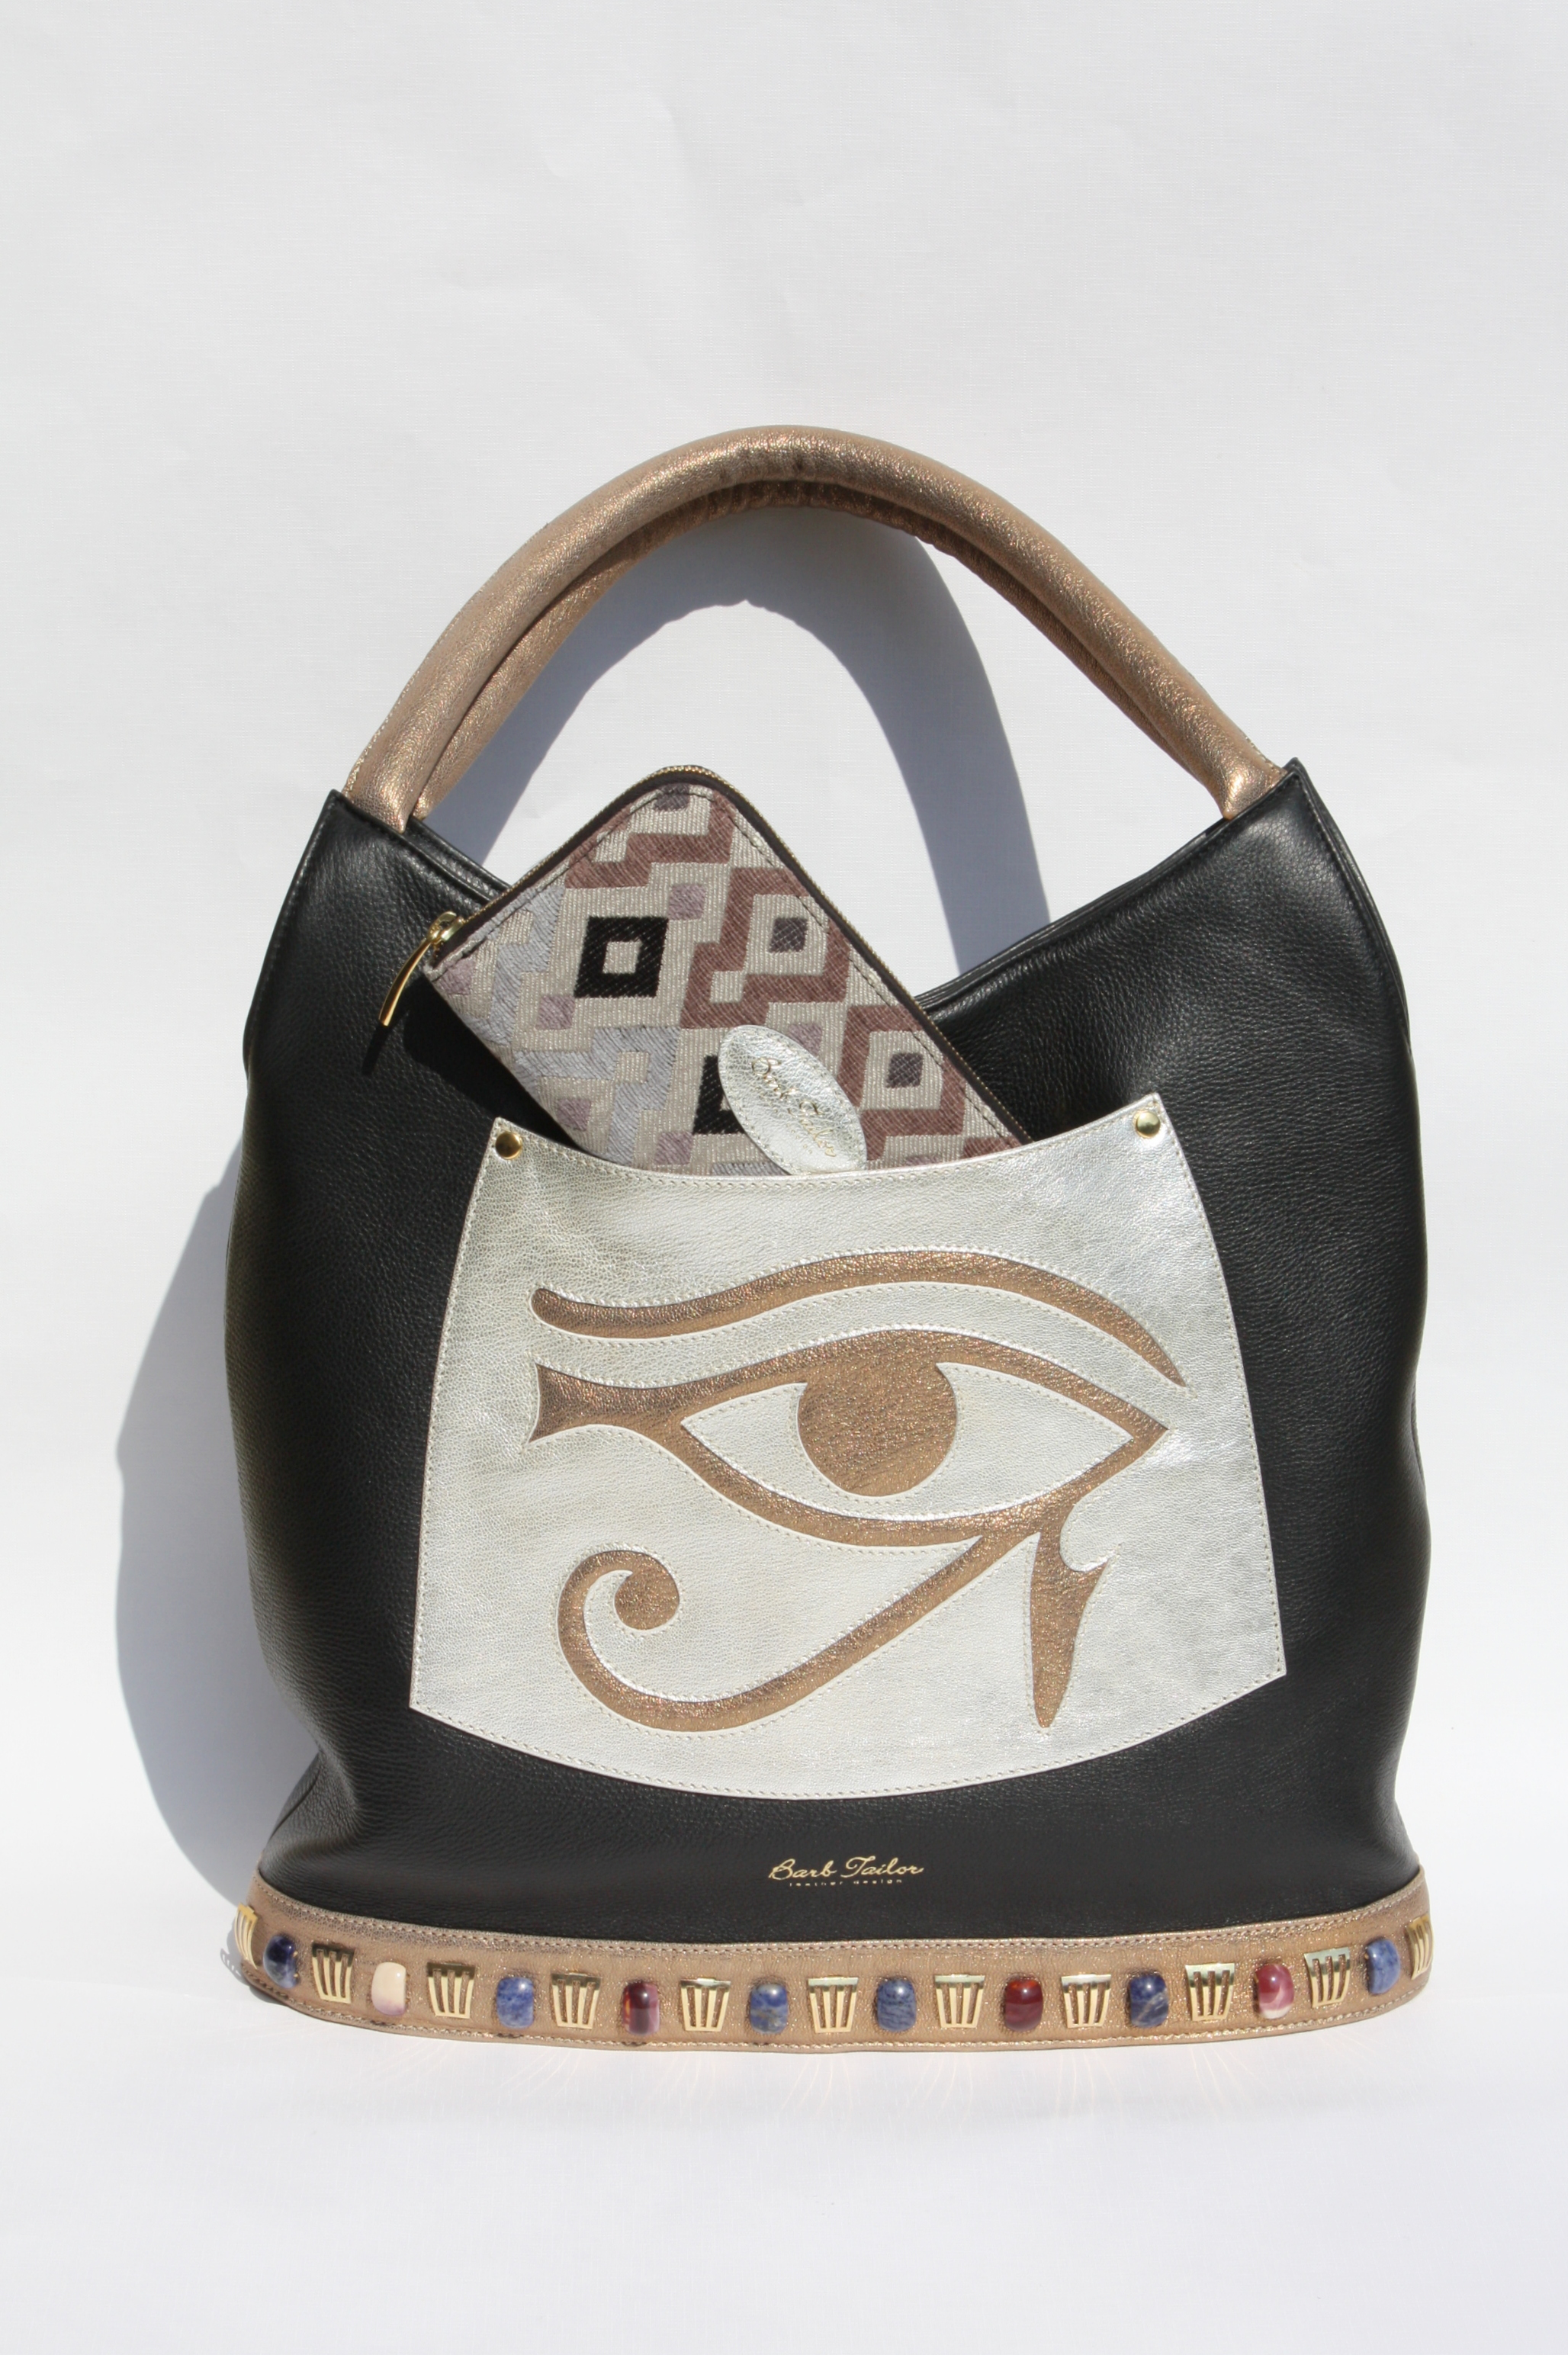 Eye of Horus with purse